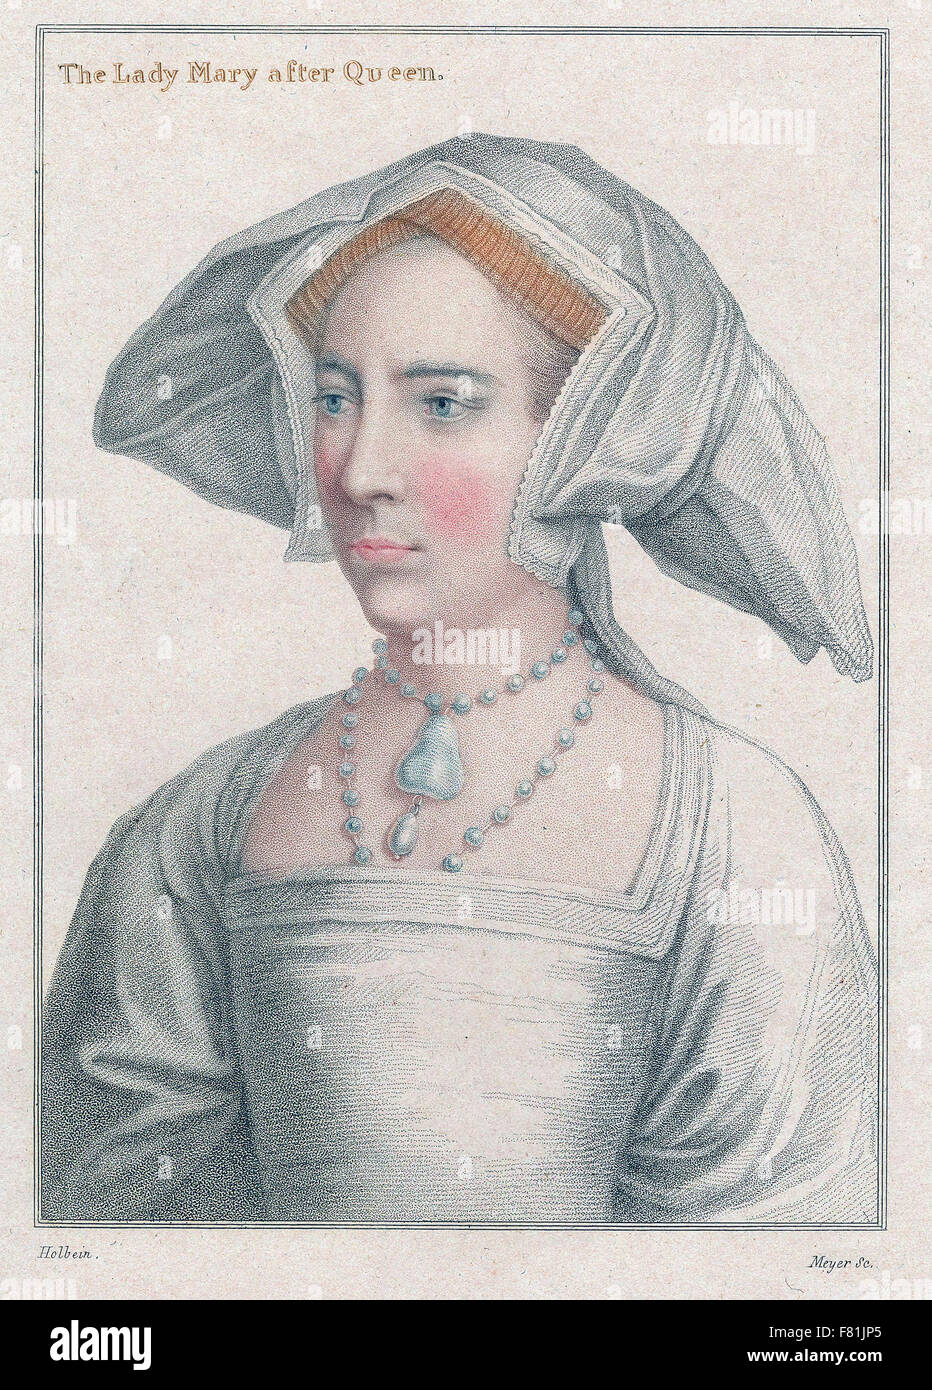 Mary Tudor (Bloody Mary) daughter of Henry VIII and Catherine of Aragon, half-sister of Elizabeth I - Engraving - Stock Image